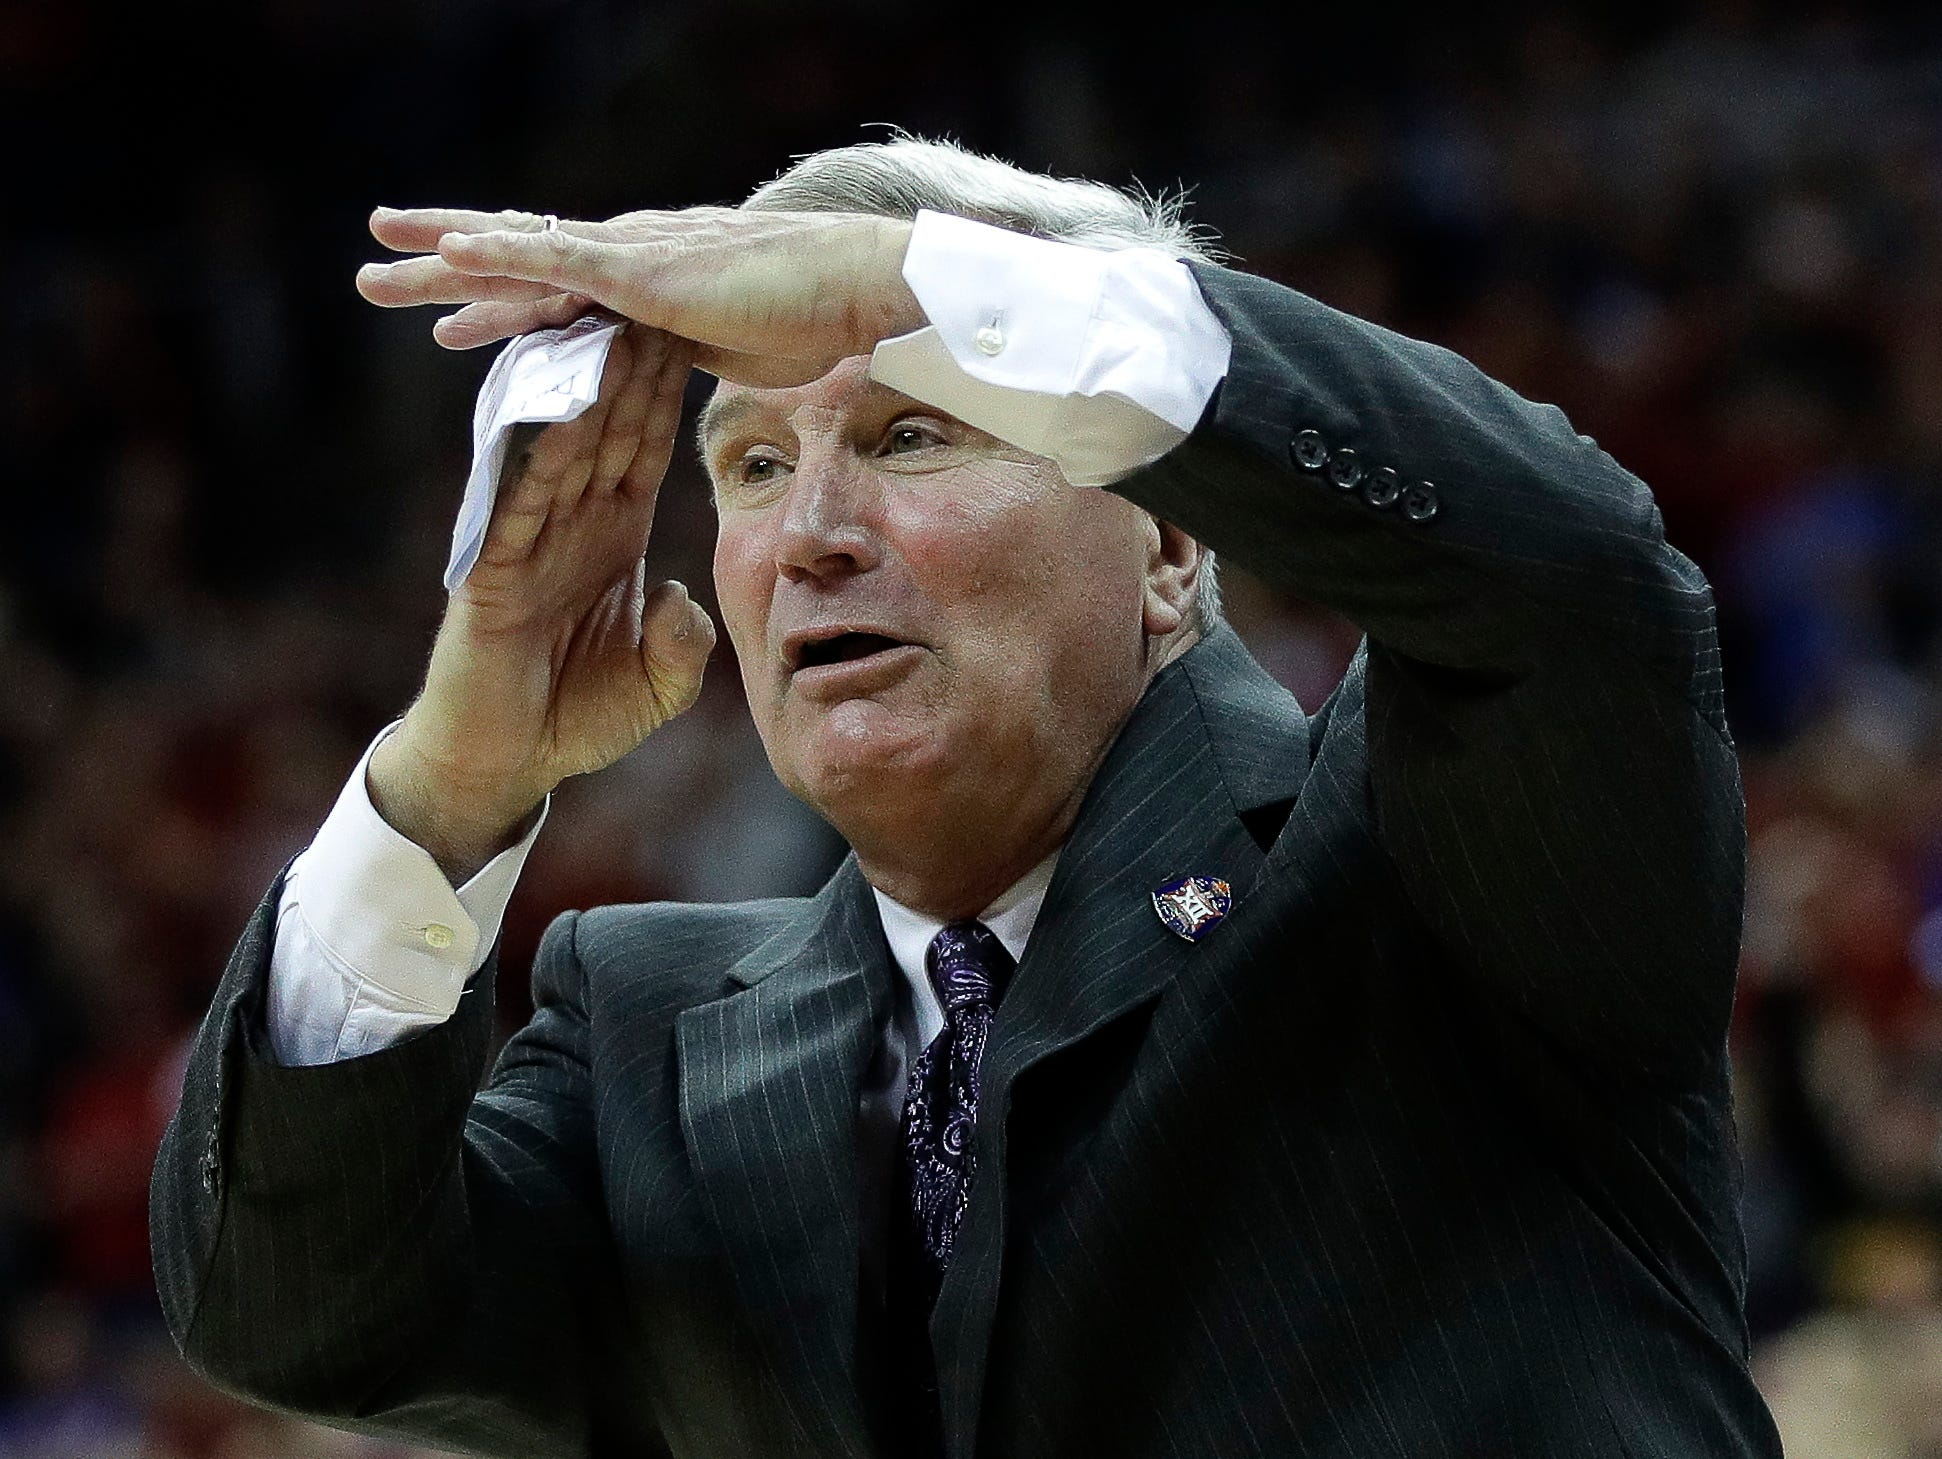 Kansas State coach Bruce Weber calls for a timeout during the first half of the team's NCAA college basketball game against Iowa State in the Big 12 men's tournament Friday, March 15, 2019, in Kansas City, Mo. (AP Photo/Charlie Riedel)